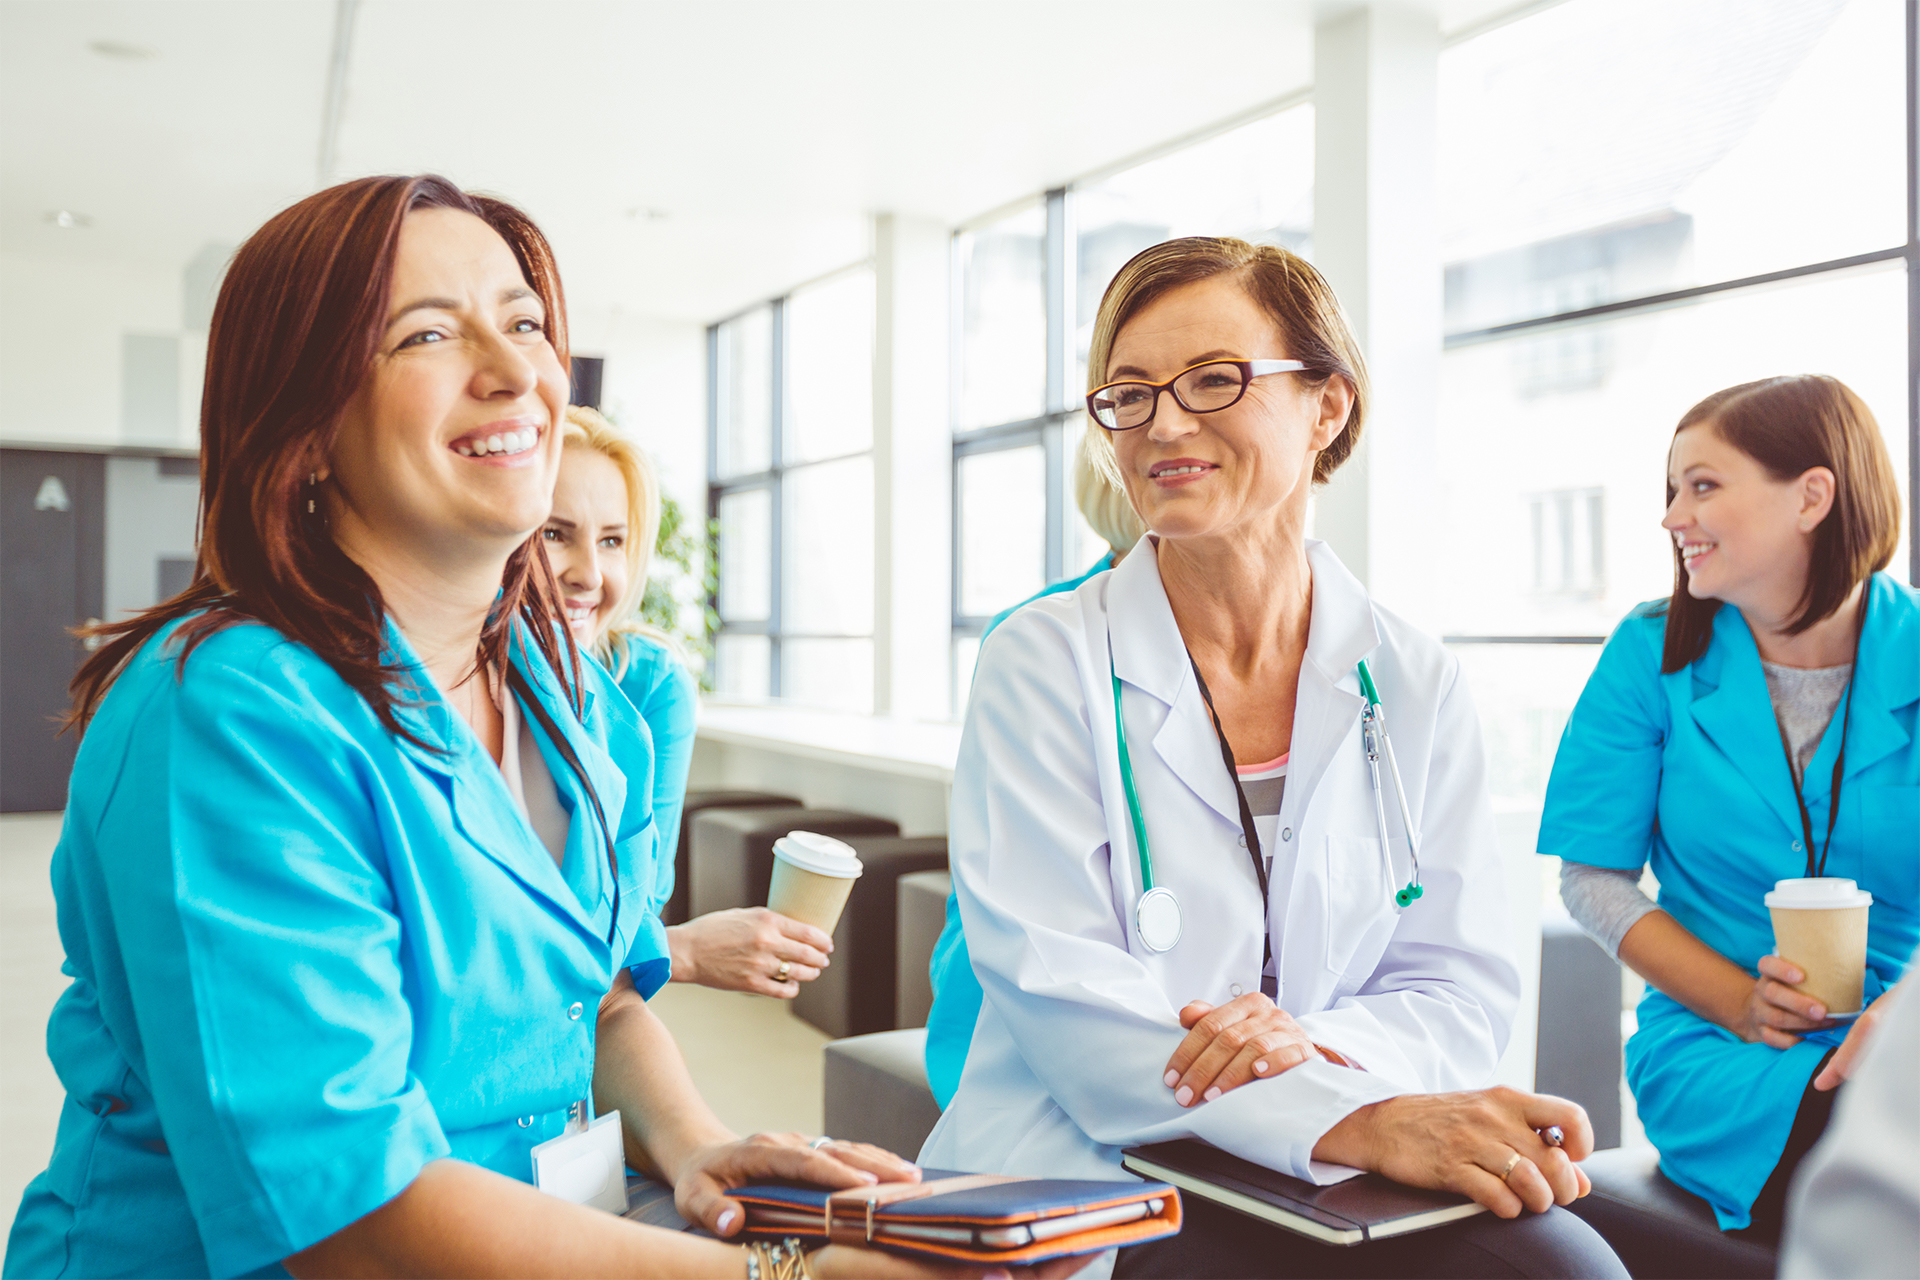 Healthcare professionals, students and their educator